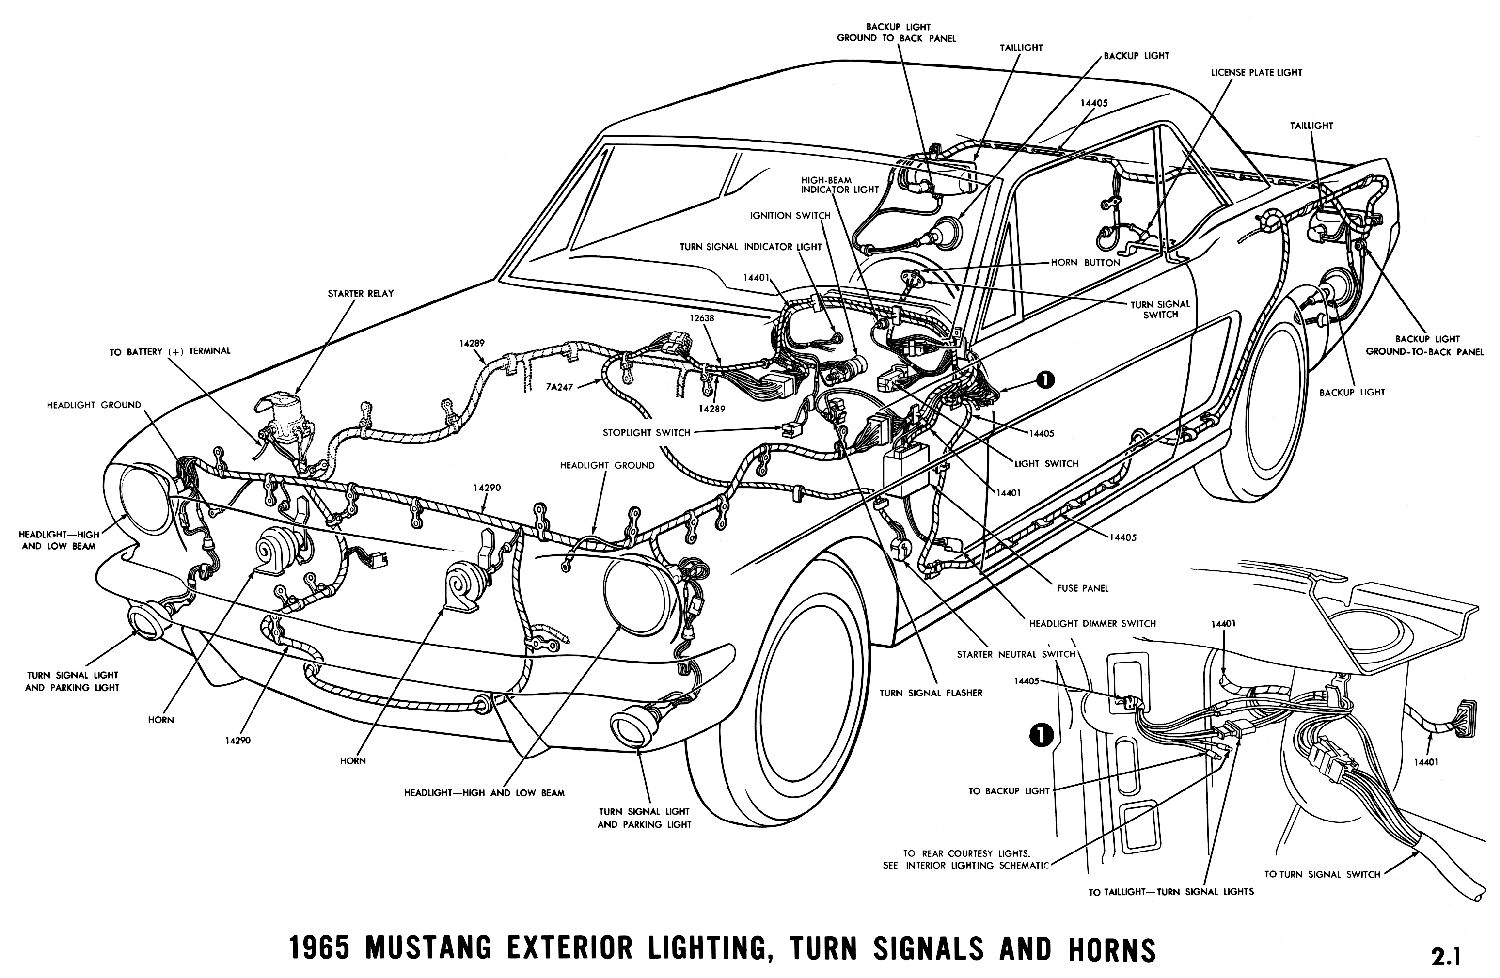 1965d 1965 mustang wiring diagrams average joe restoration 1969 mustang alternator wiring diagram at eliteediting.co